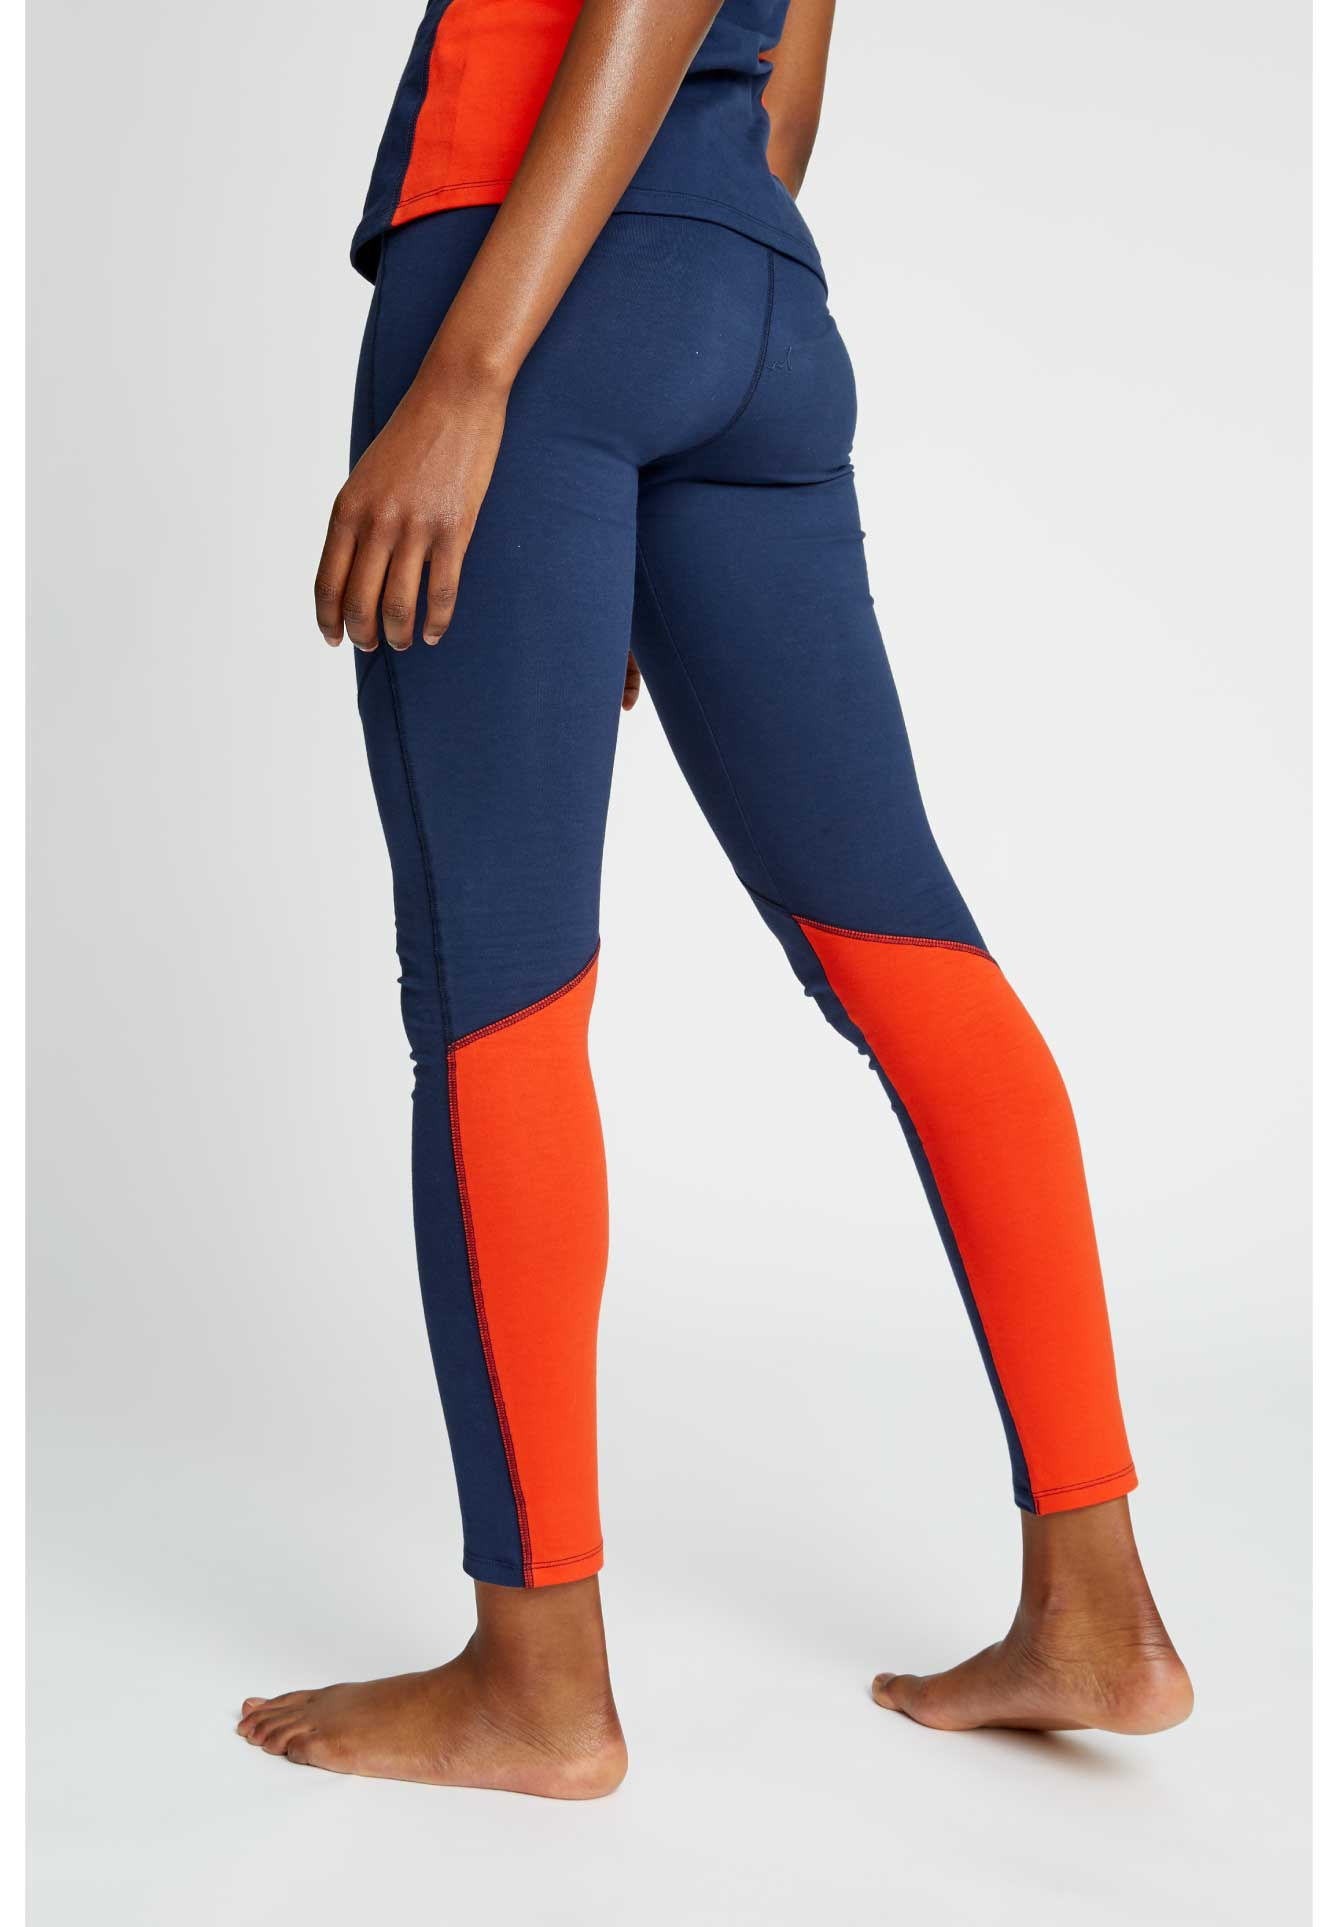 Yoga Colourblock Leggings-Leggings-Sancho's Dress